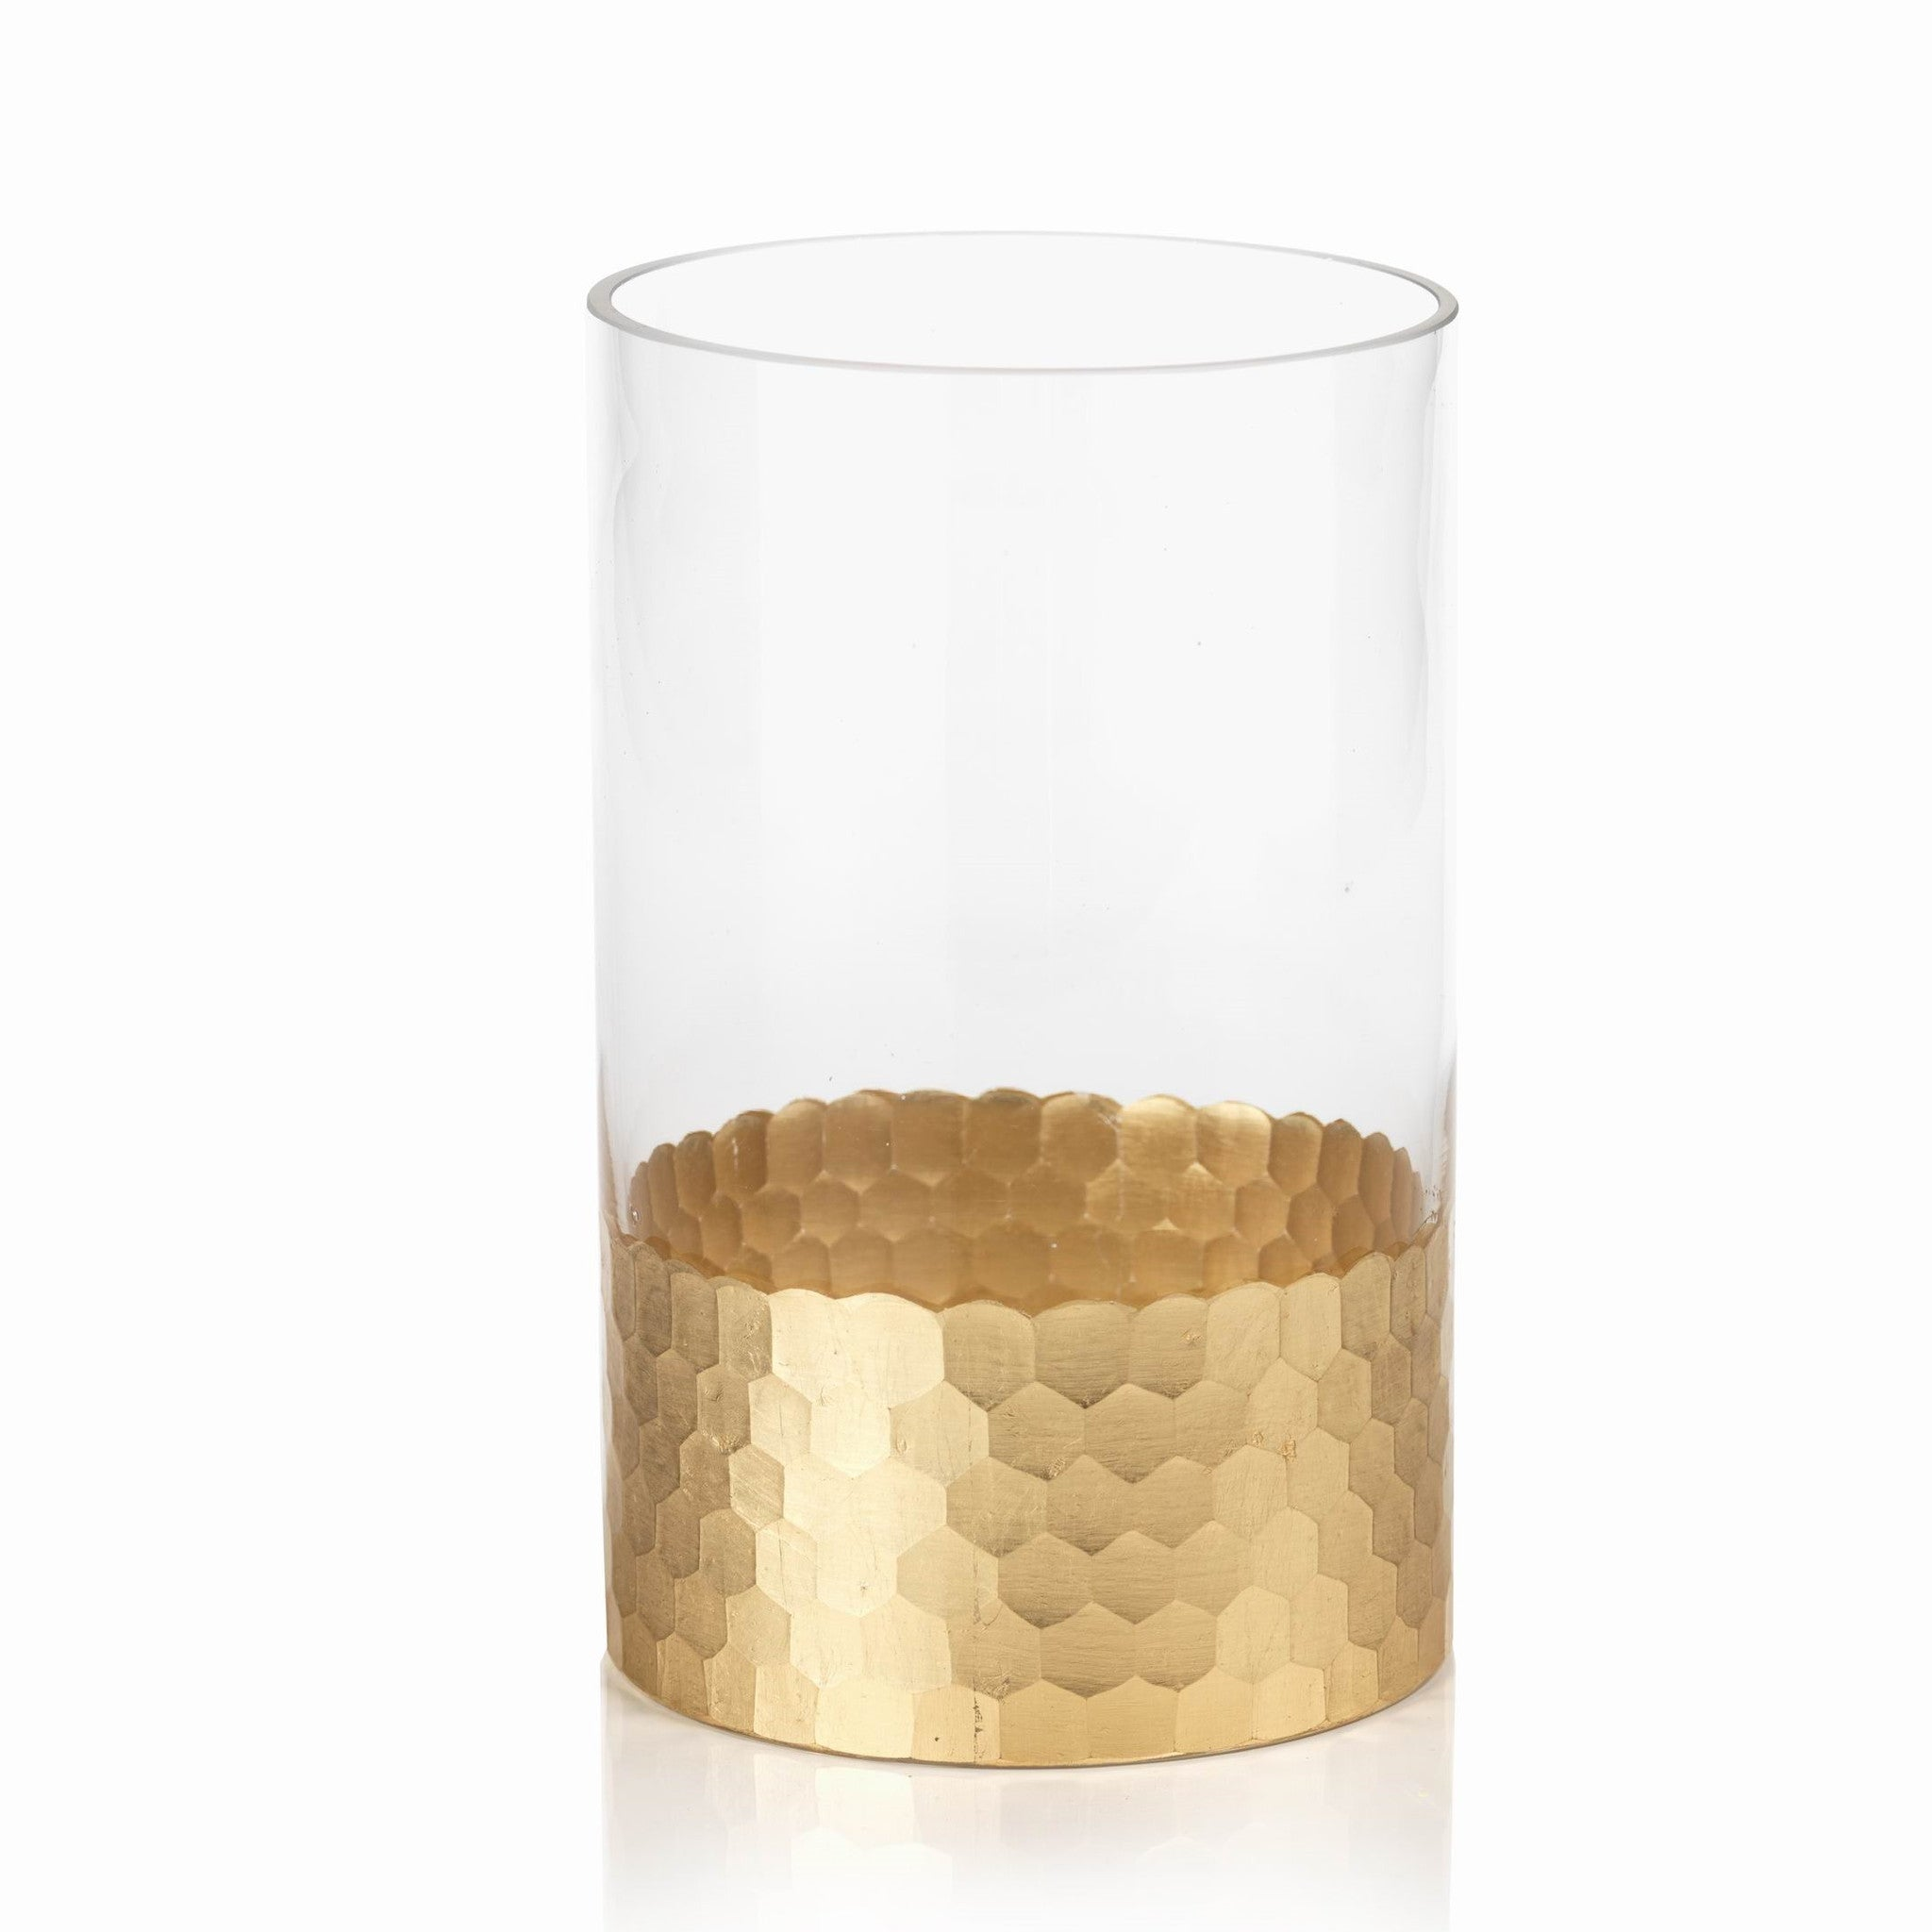 Fez Cut Glass Hurricane w/ Gold Leaf - CARLYLE AVENUE